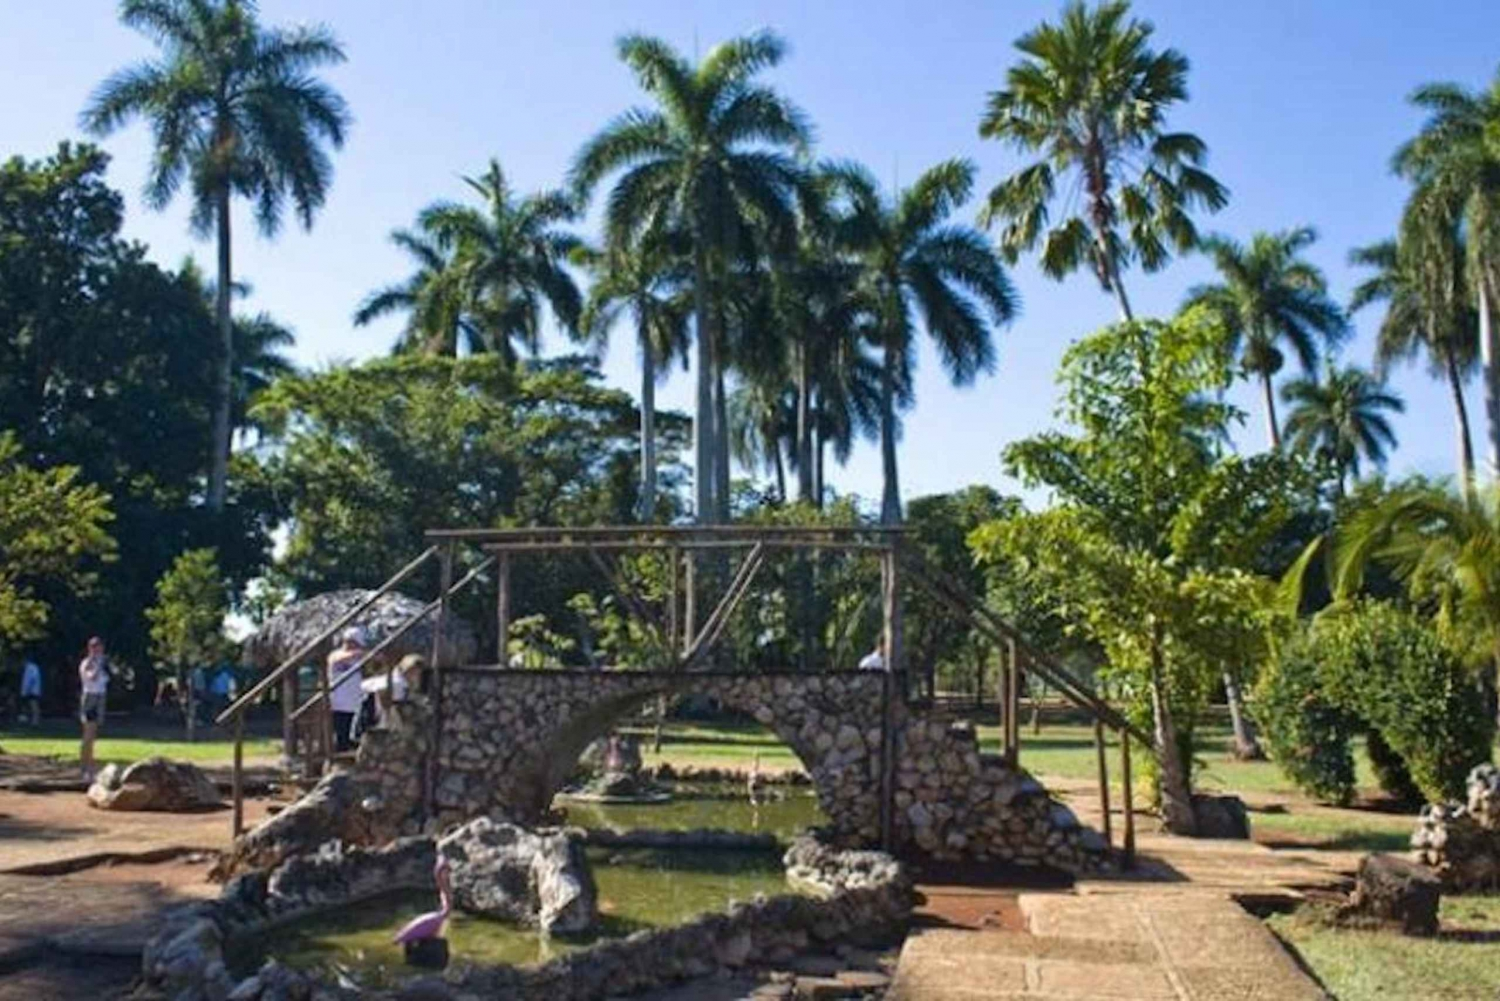 Best tours in and around Varadero, Cuba